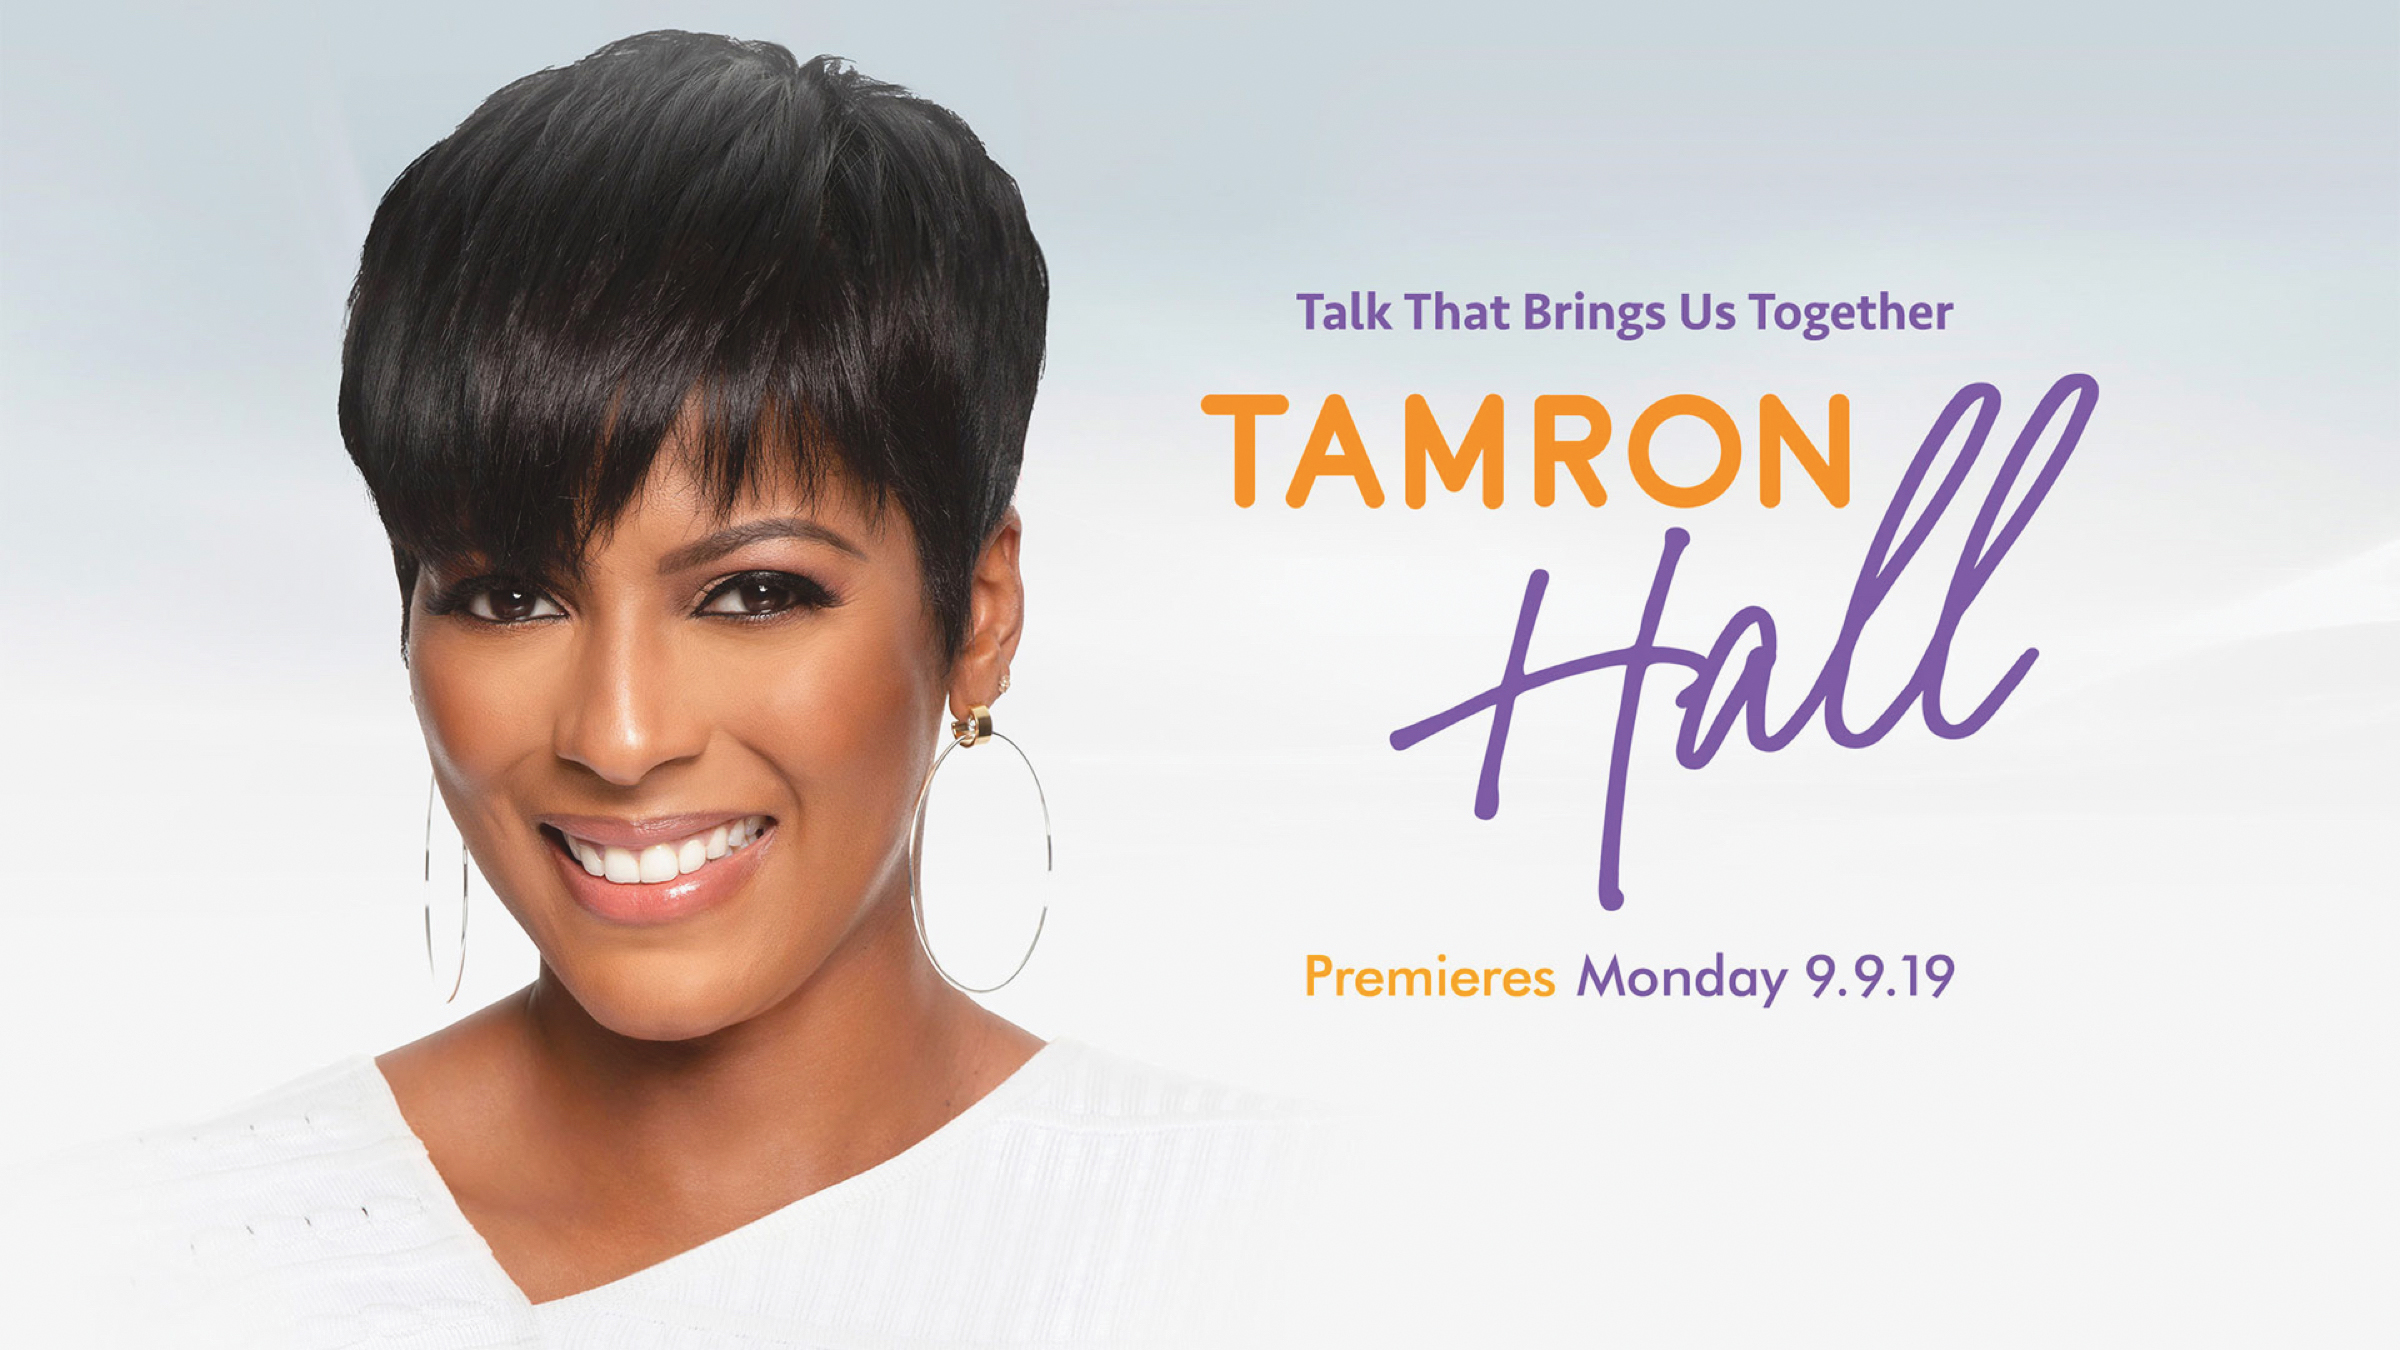 The Tamron Hall Show debuts 9/9/19. Check local listings for channel and time information.